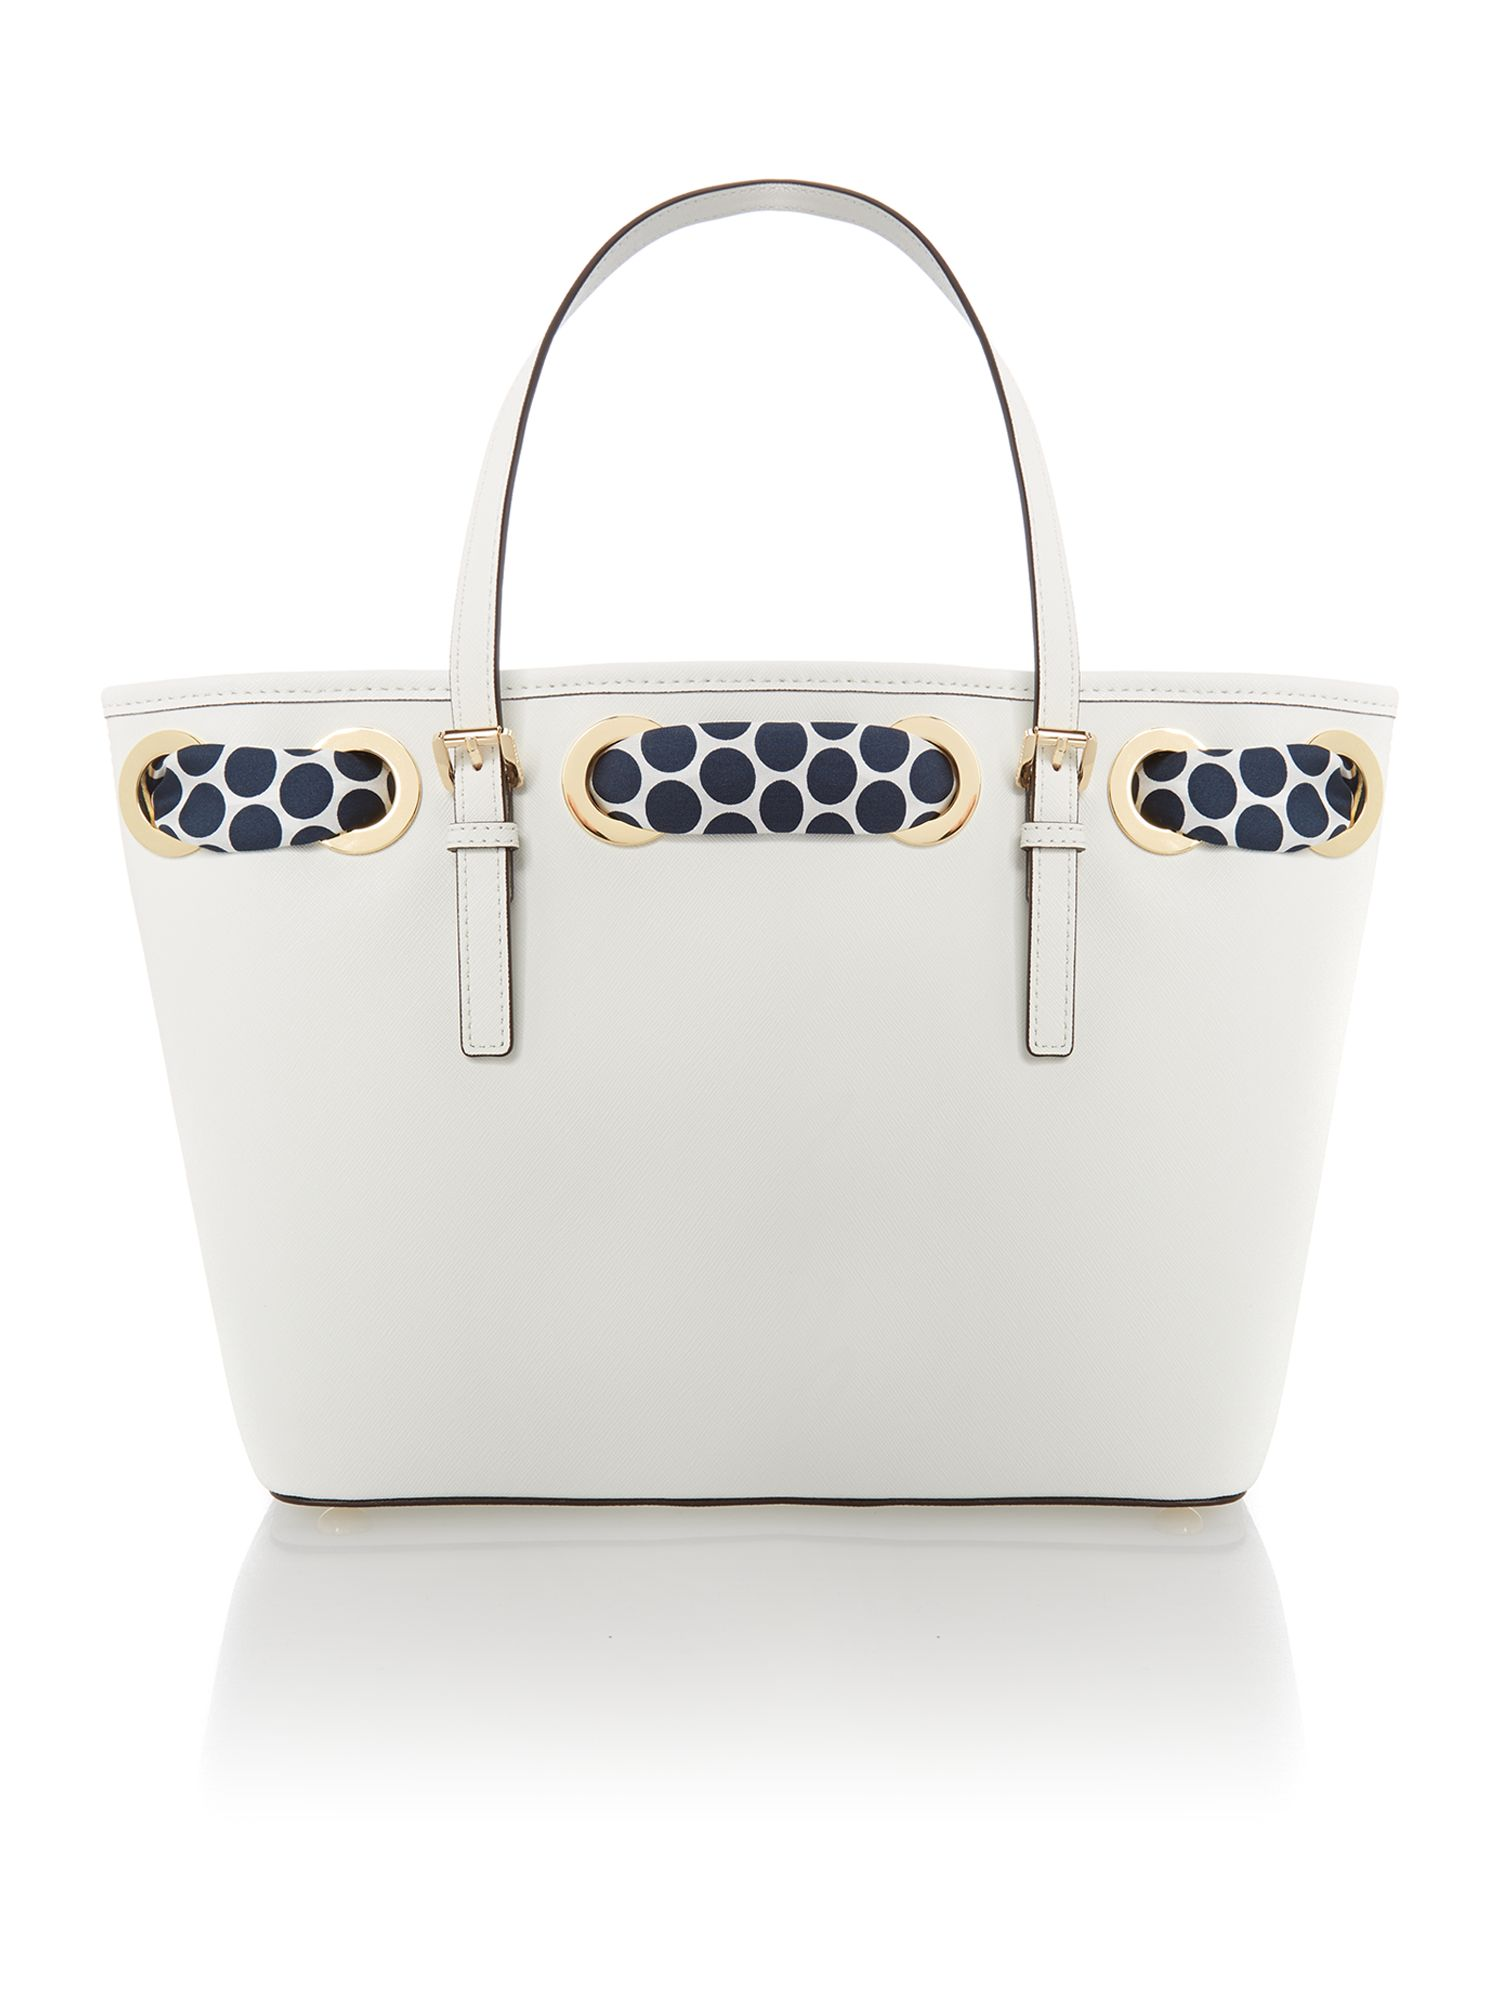 Jet set travel small white tote bag